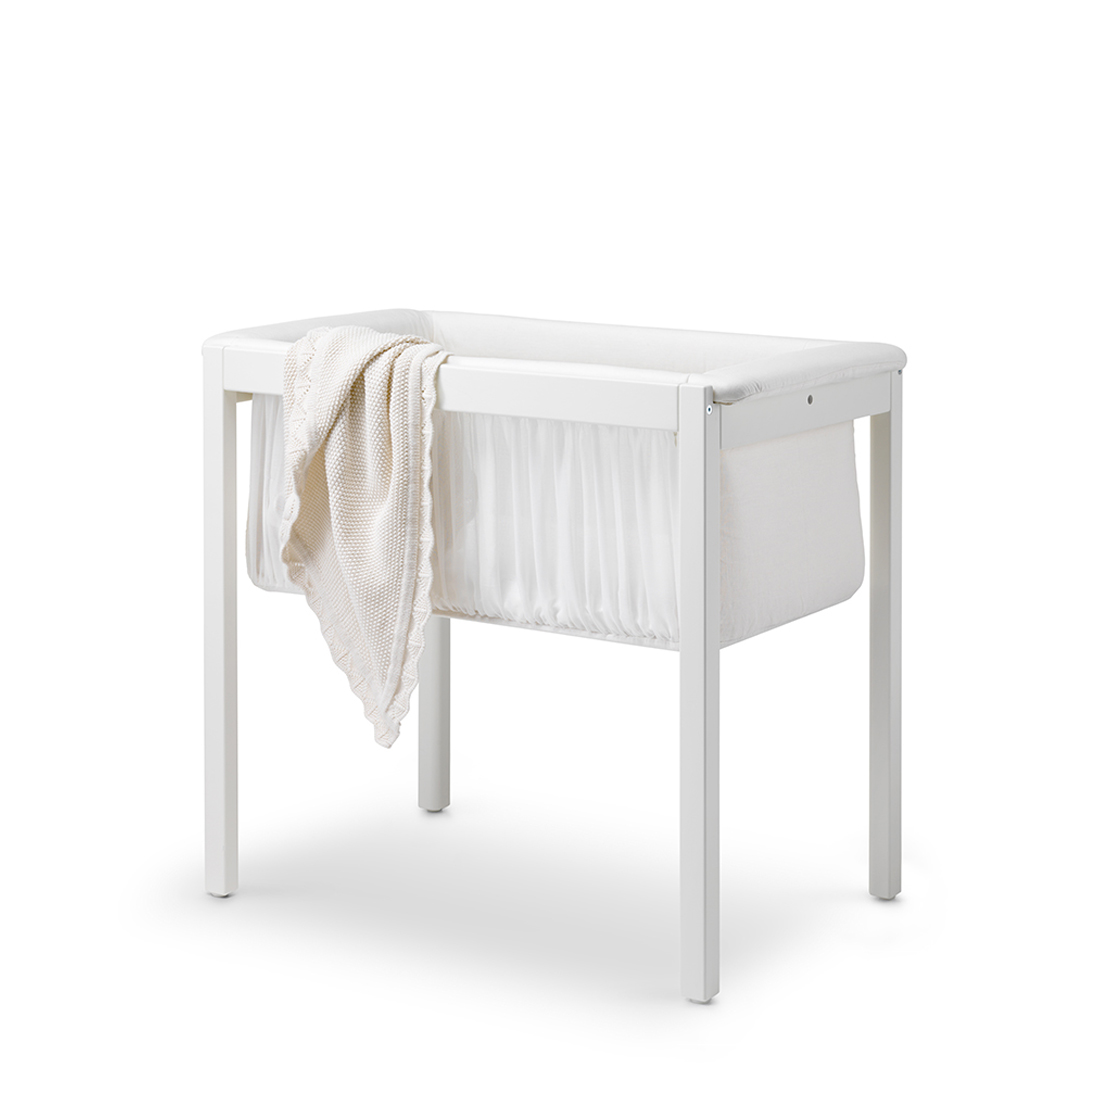 Колыбель Stokke Home Cradle